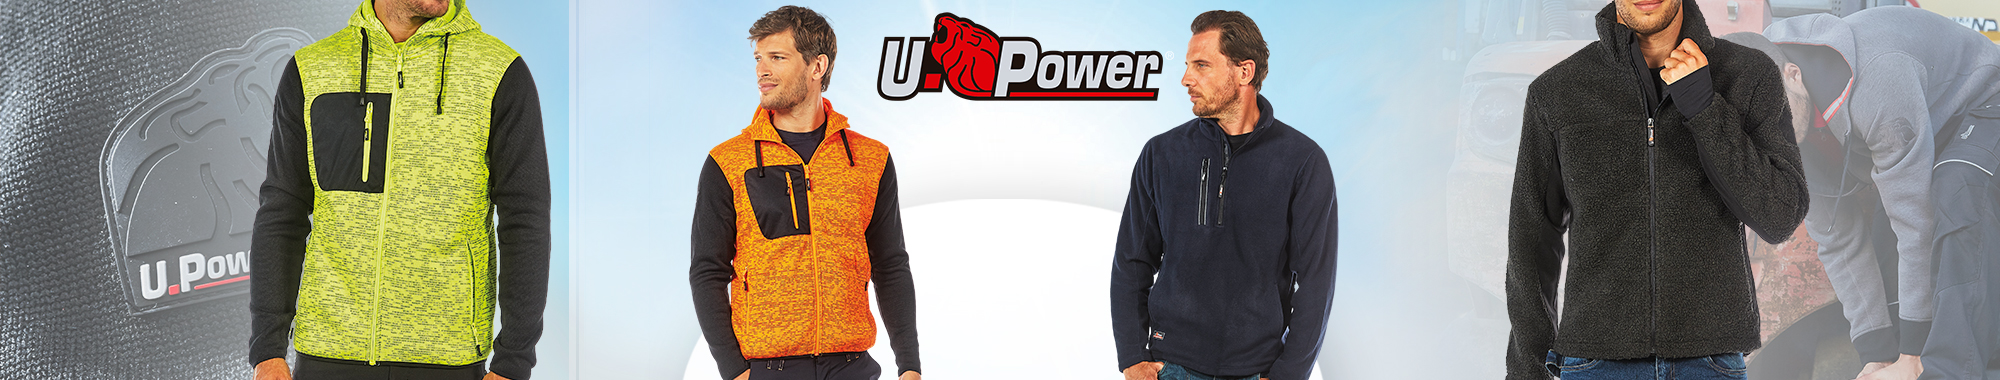 Sudaderas U-Power